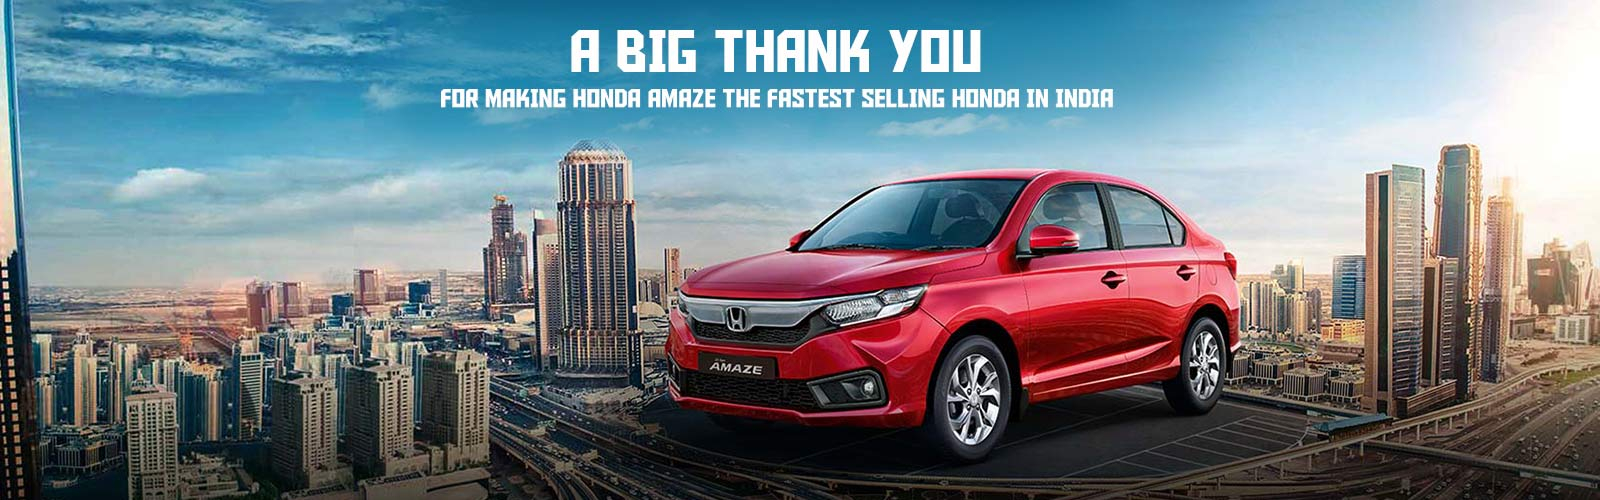 Garage Honda Sion Viva Honda Authorized Honda Dealership